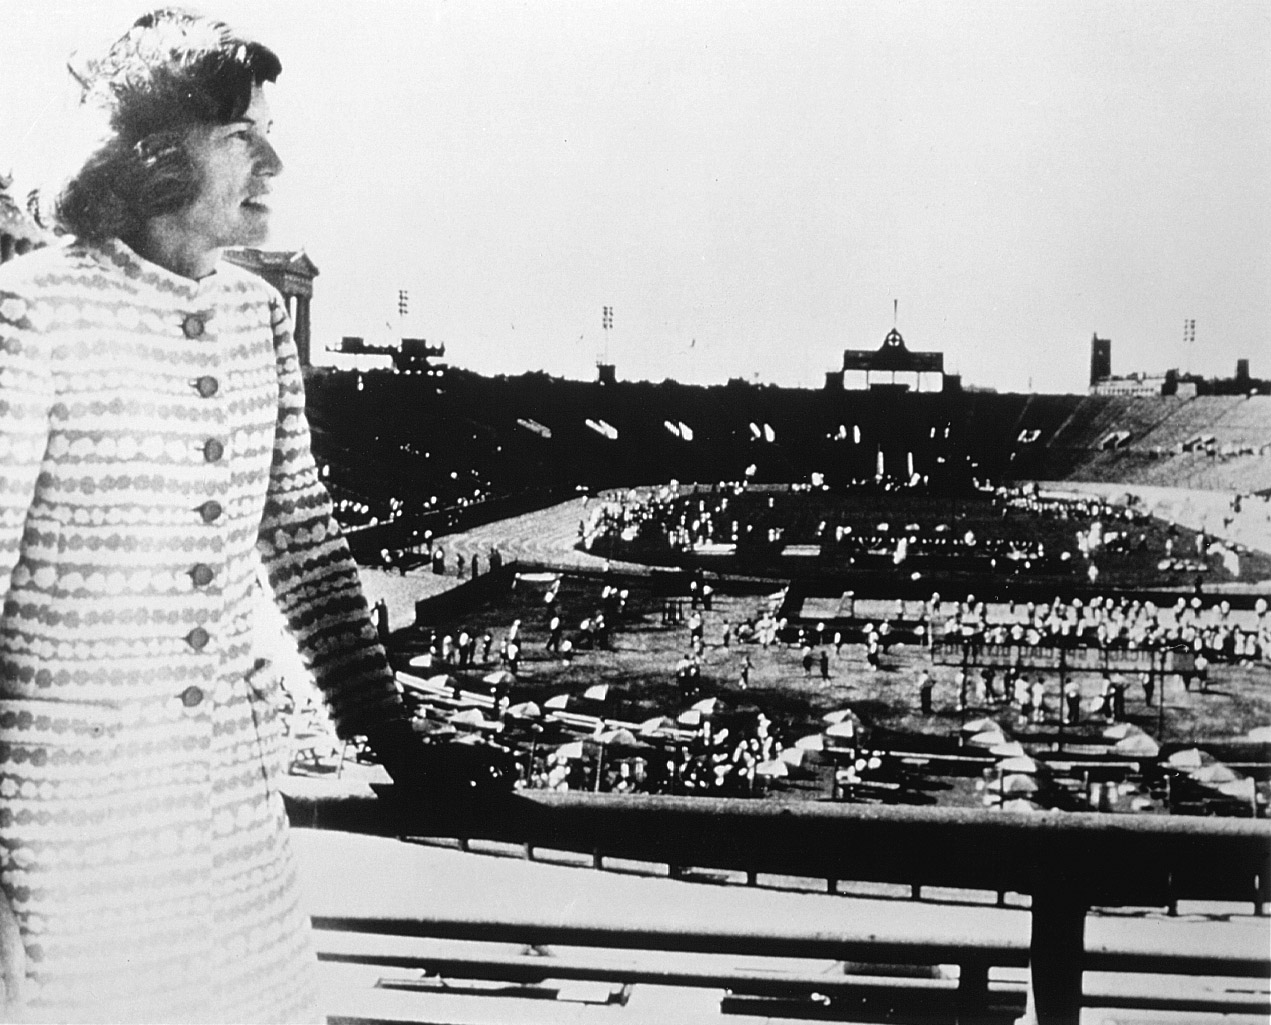 Eunice Kennedy Shriver overlooks Soldier Field at the 1968 Games.